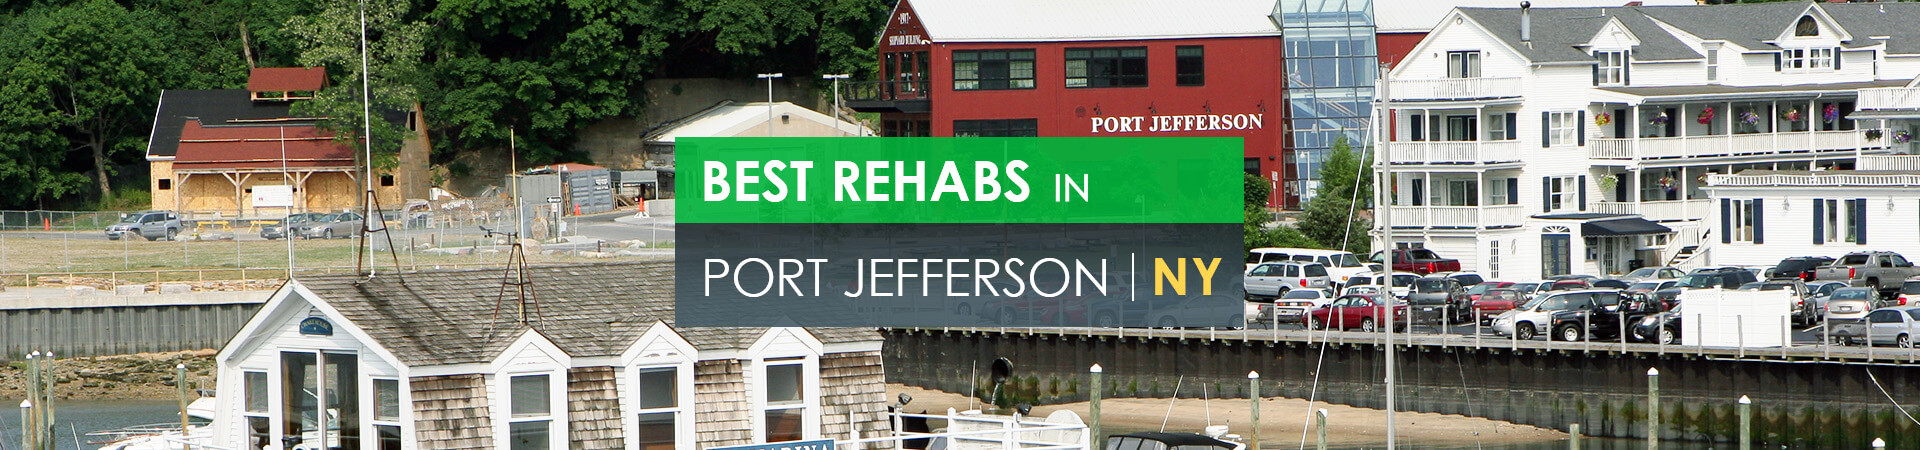 Best rehabs in Port Jefferson, NY